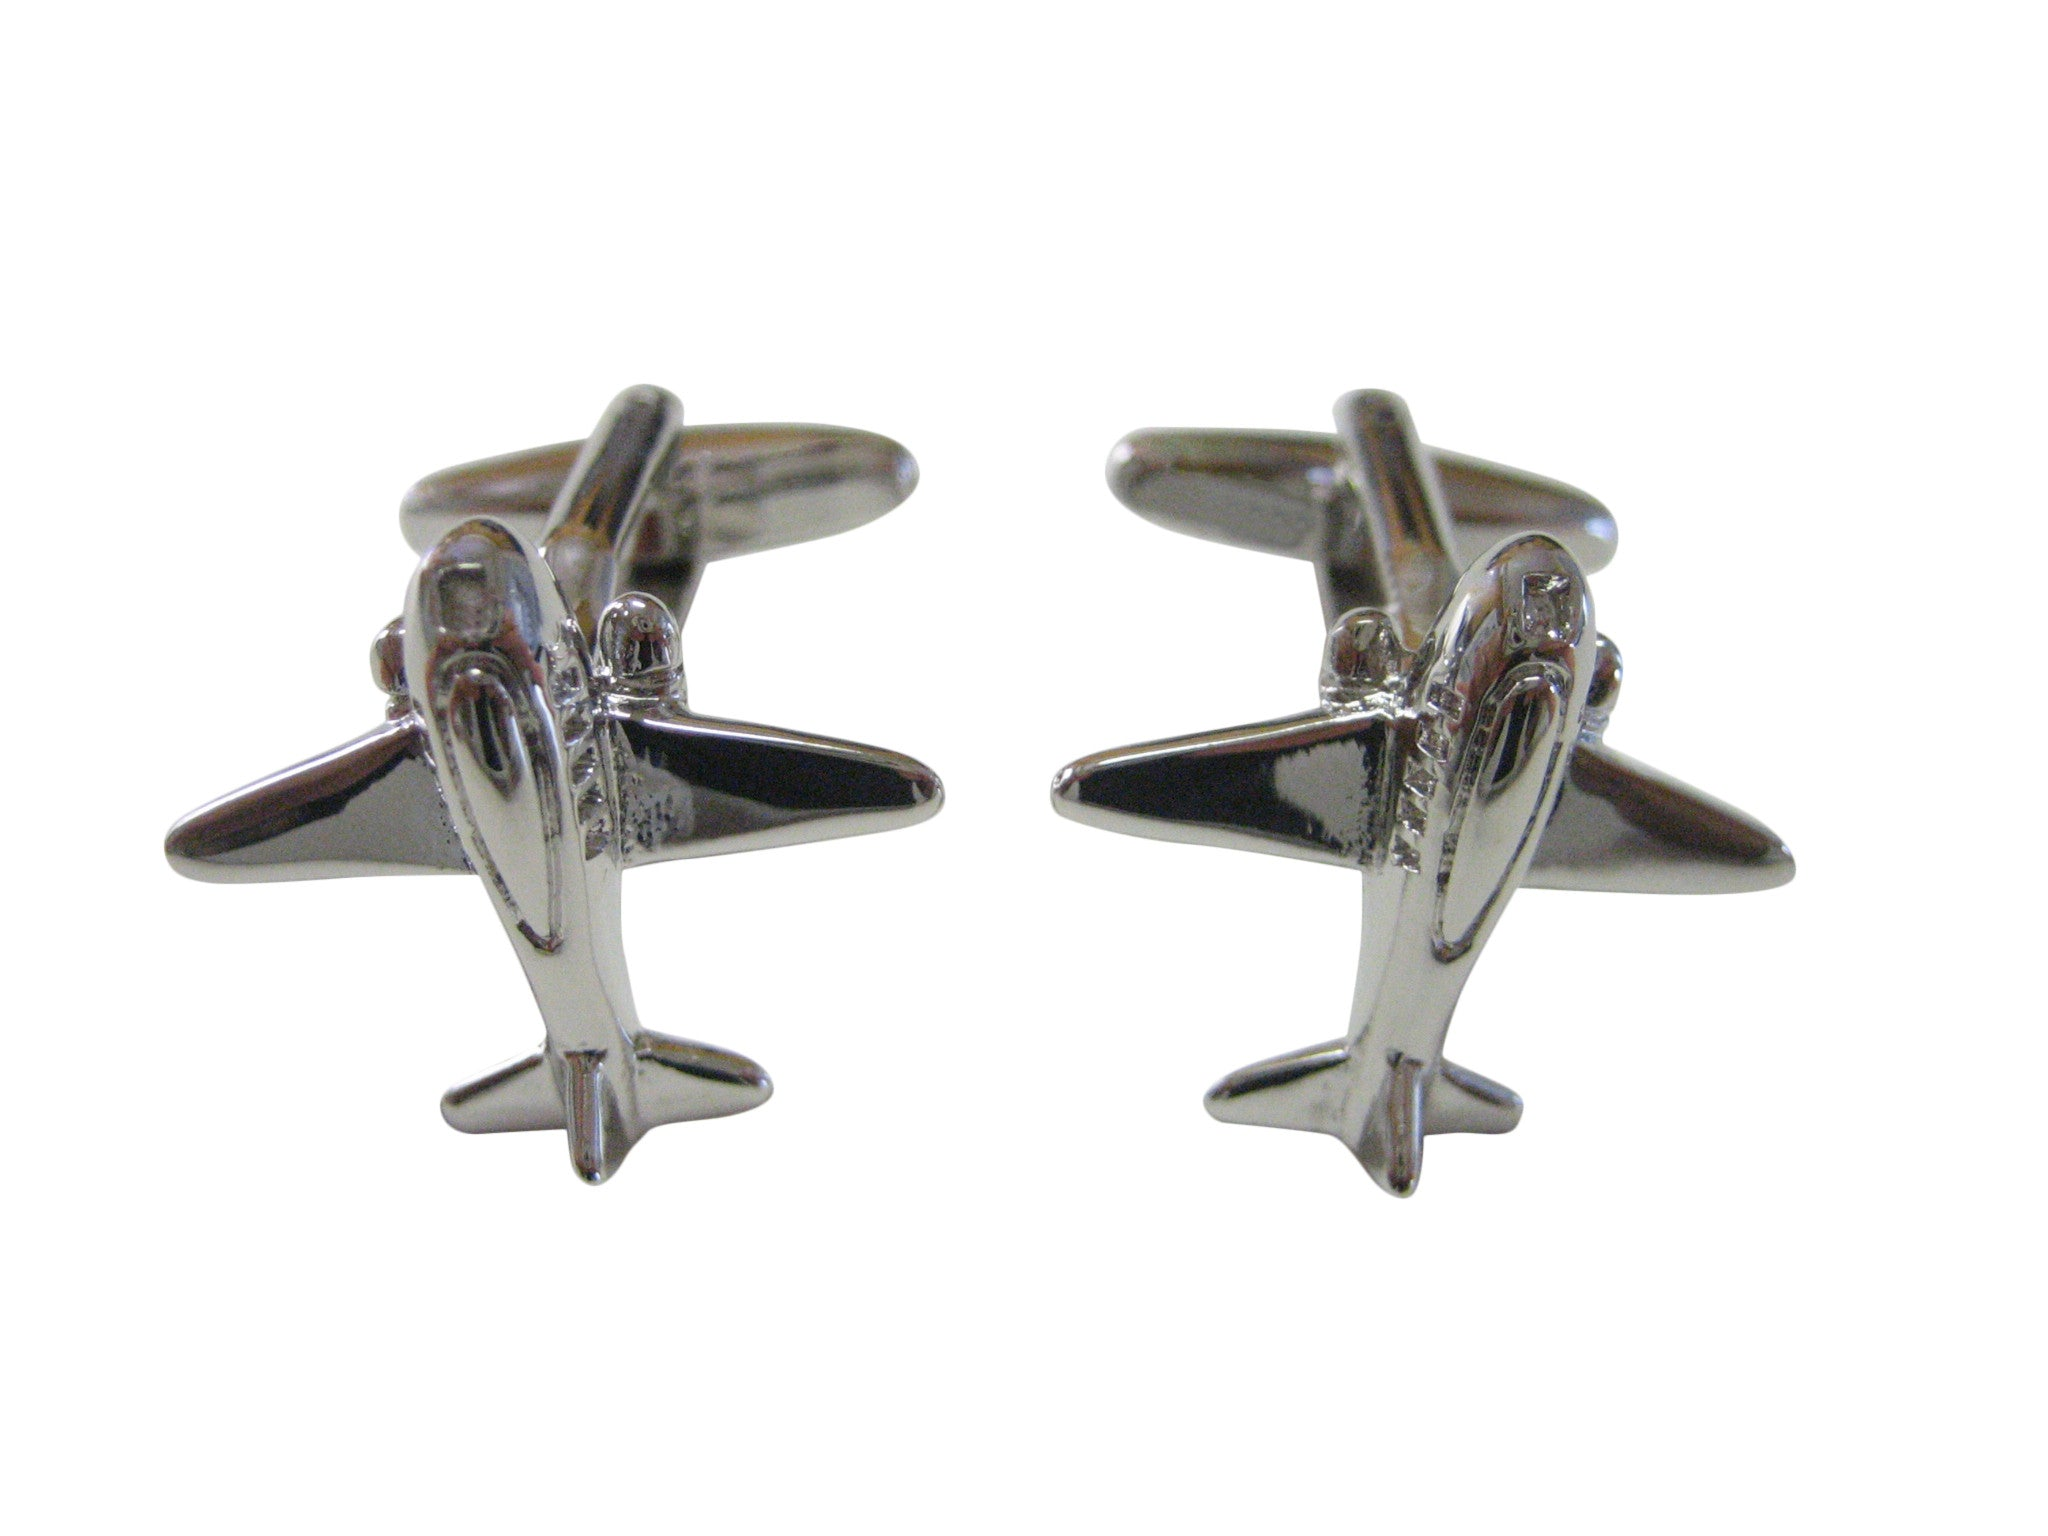 Silver Toned Commercial Plane Cufflinks